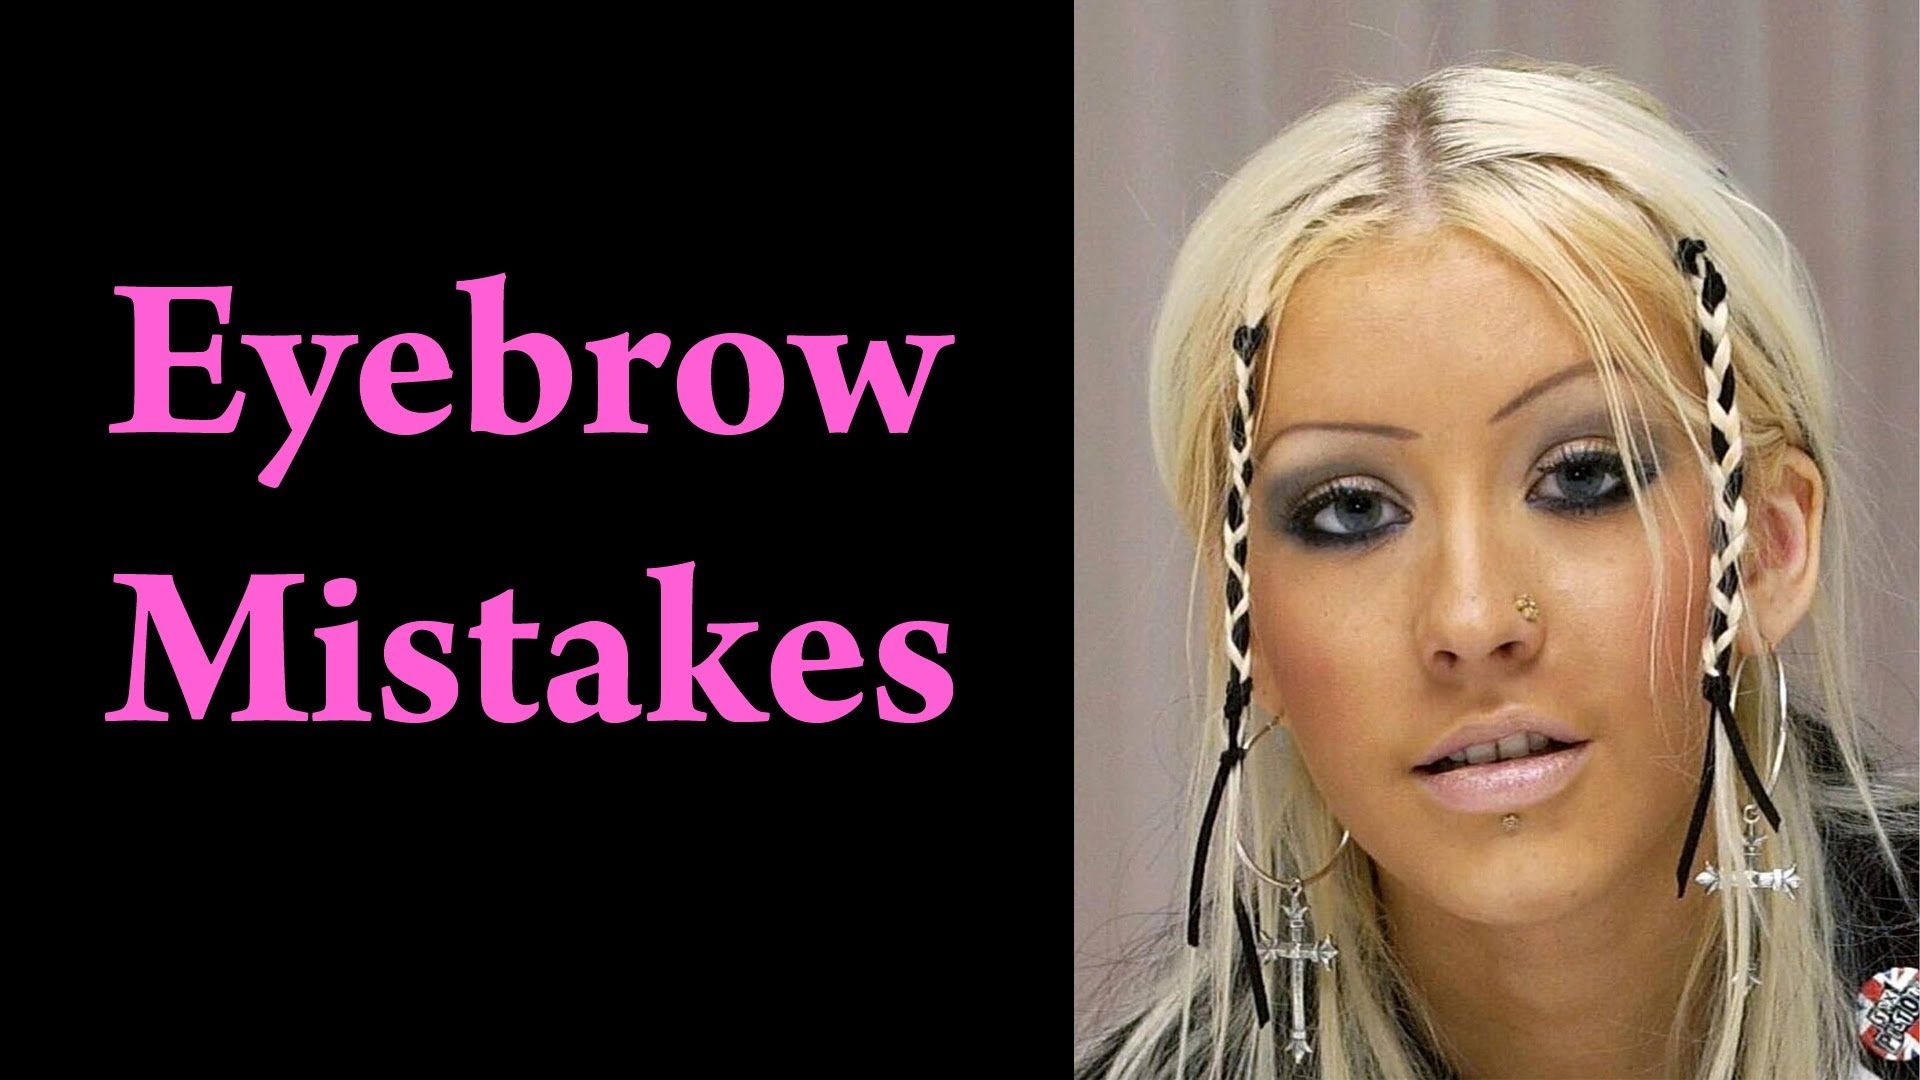 How To Fix Eyebrow Mistakes Tutorial Makeup Video Eyebrows